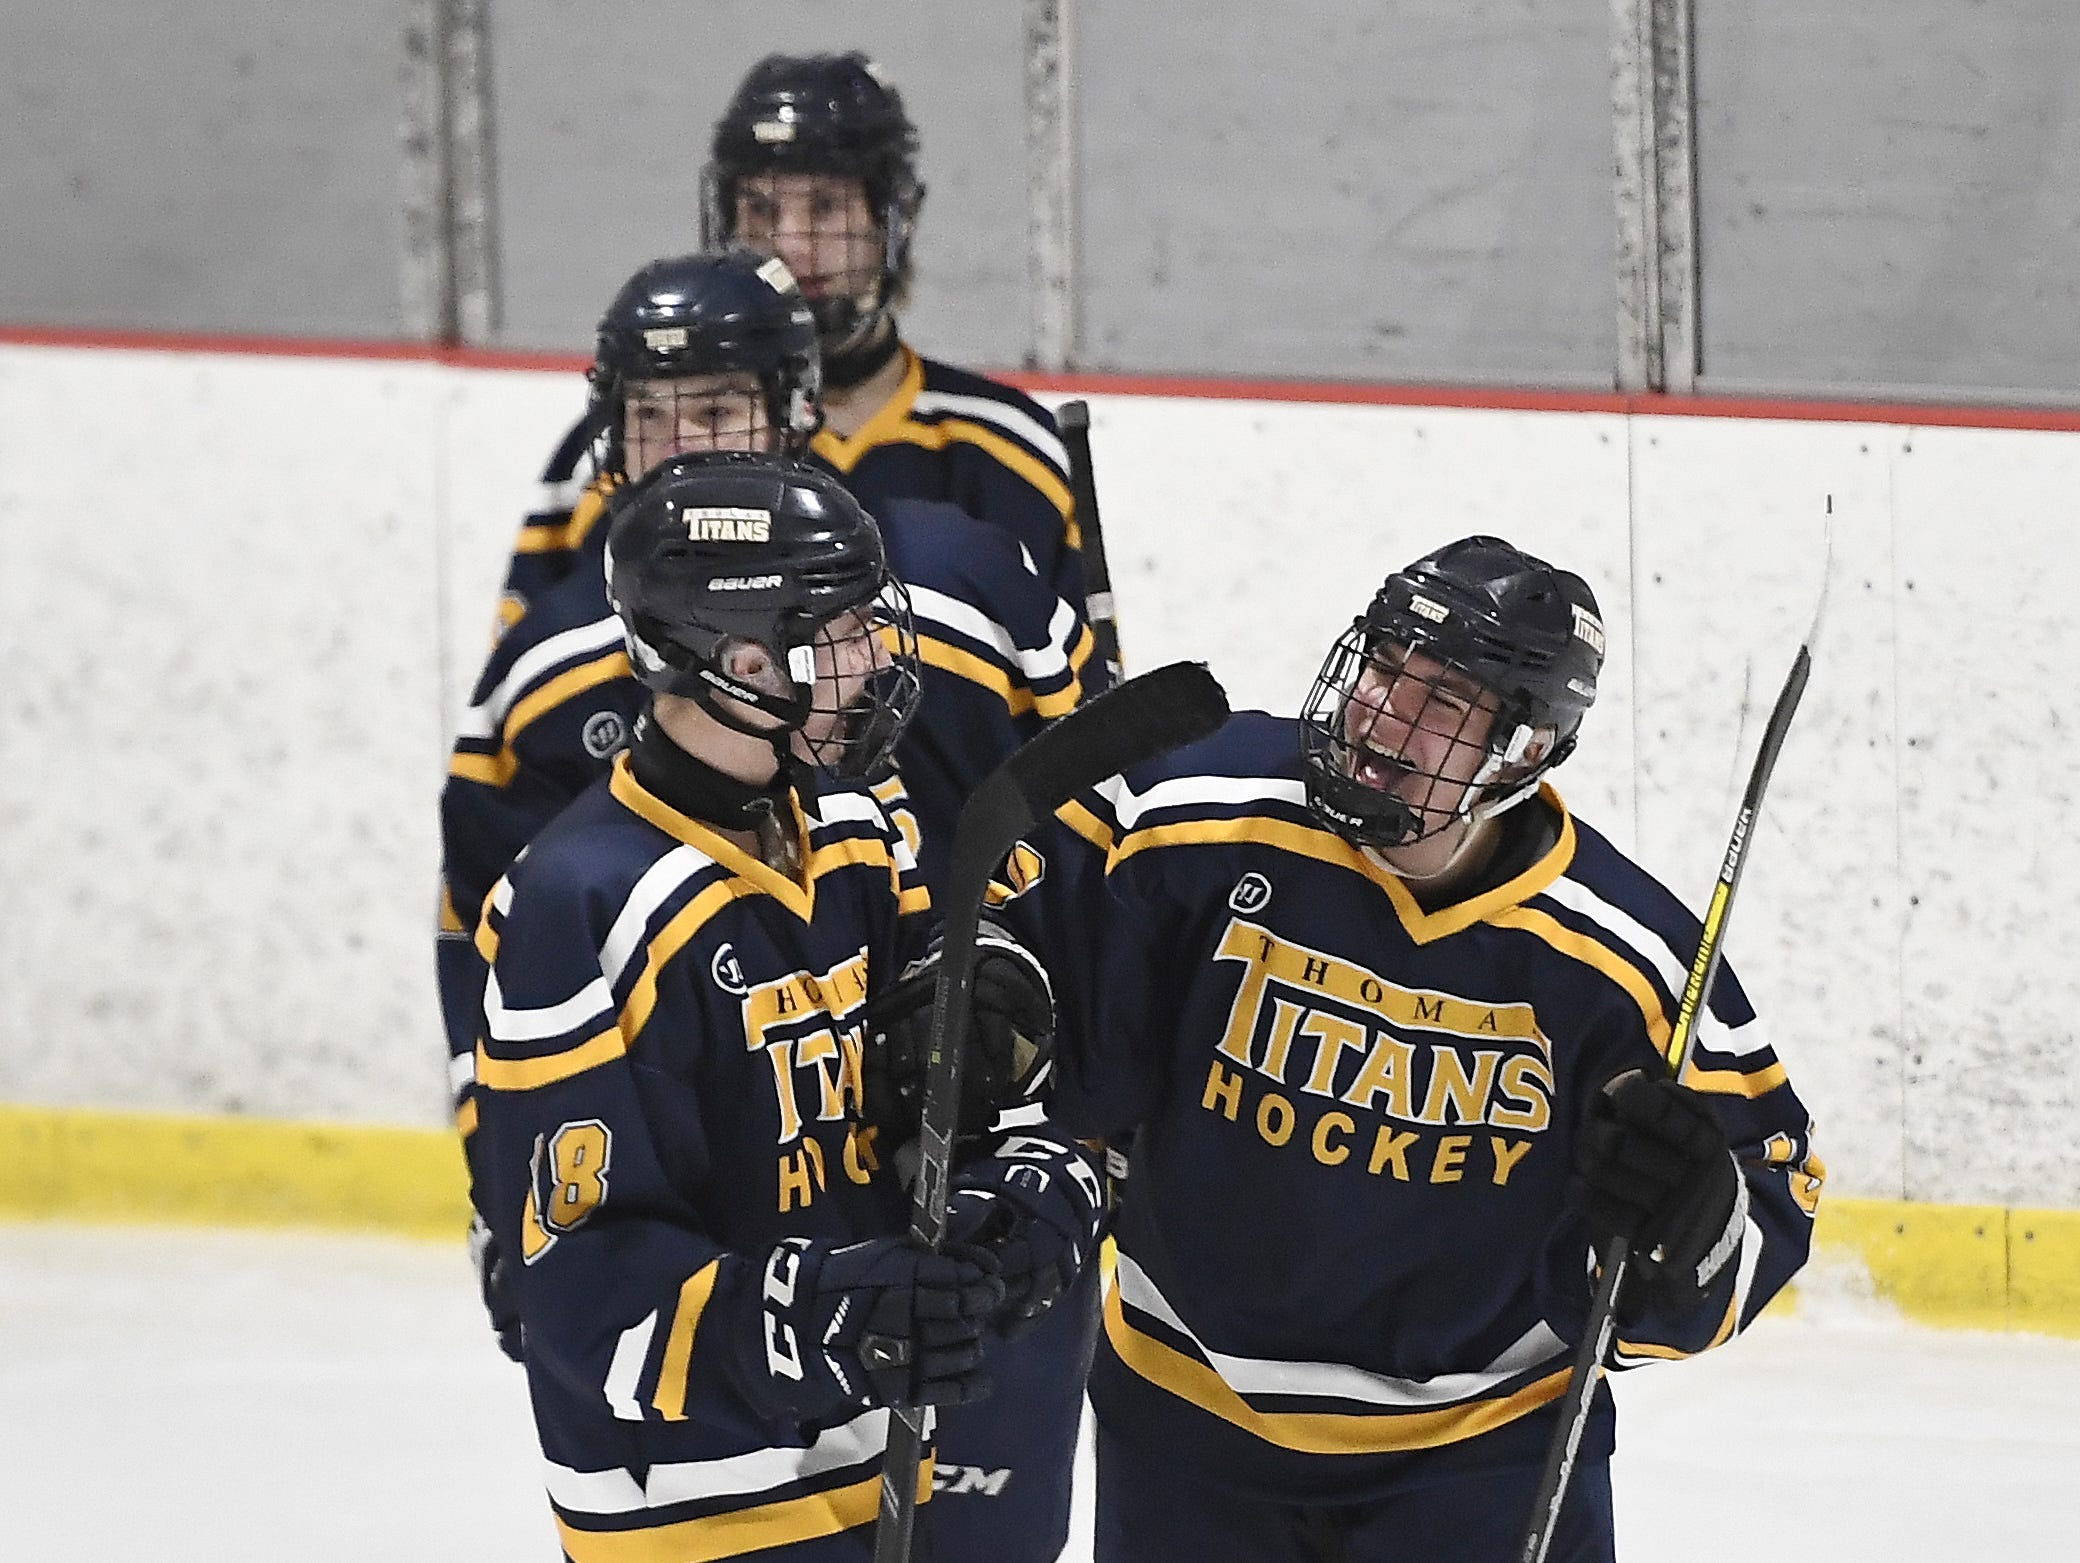 Webster Thomas' Tommy Ammon, right, celebrates his goal with Liam Mayer during a regular season game against Chuchville-Chili played at the Scottsville Ice Arena, Tuesday, Jan. 22, 2019. Webster Thomas beat Chuchville-Chili 4-1.